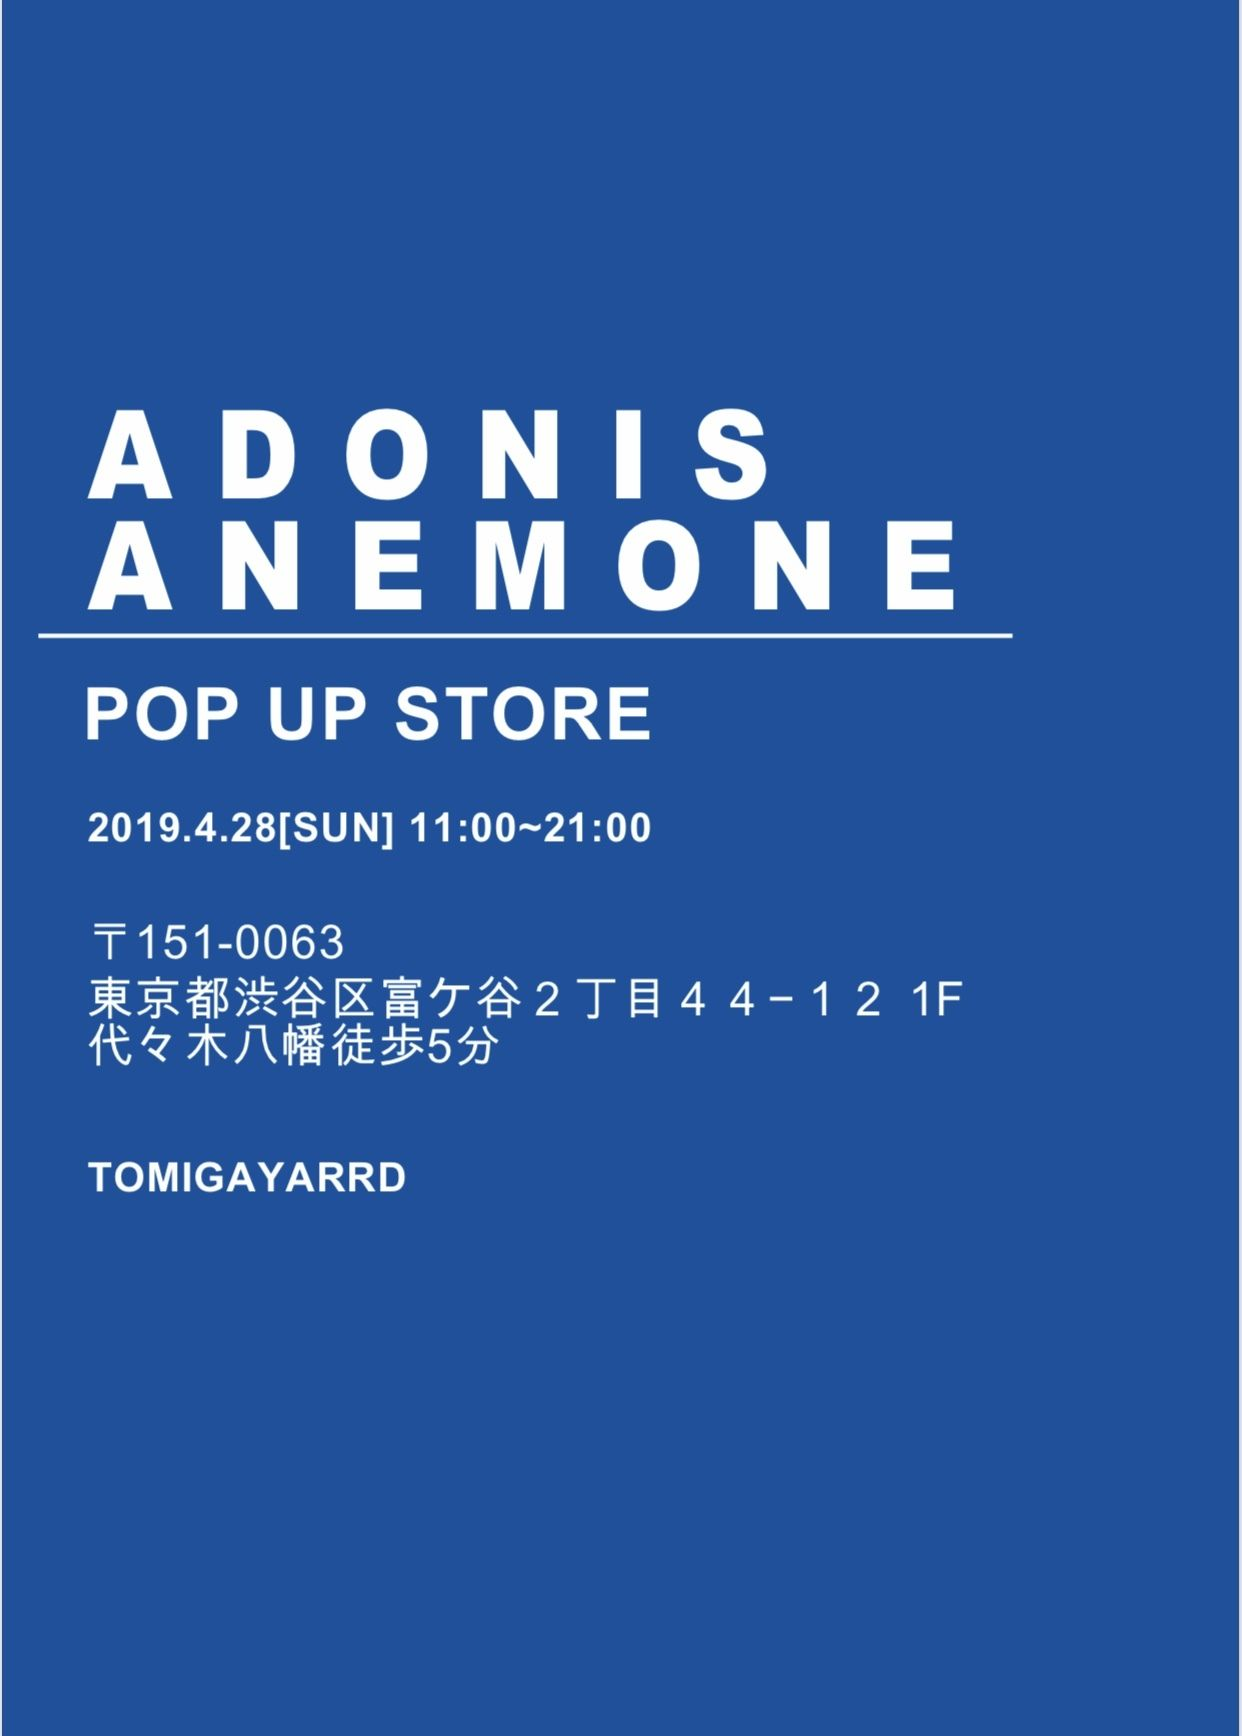 【POP UP  STORE】